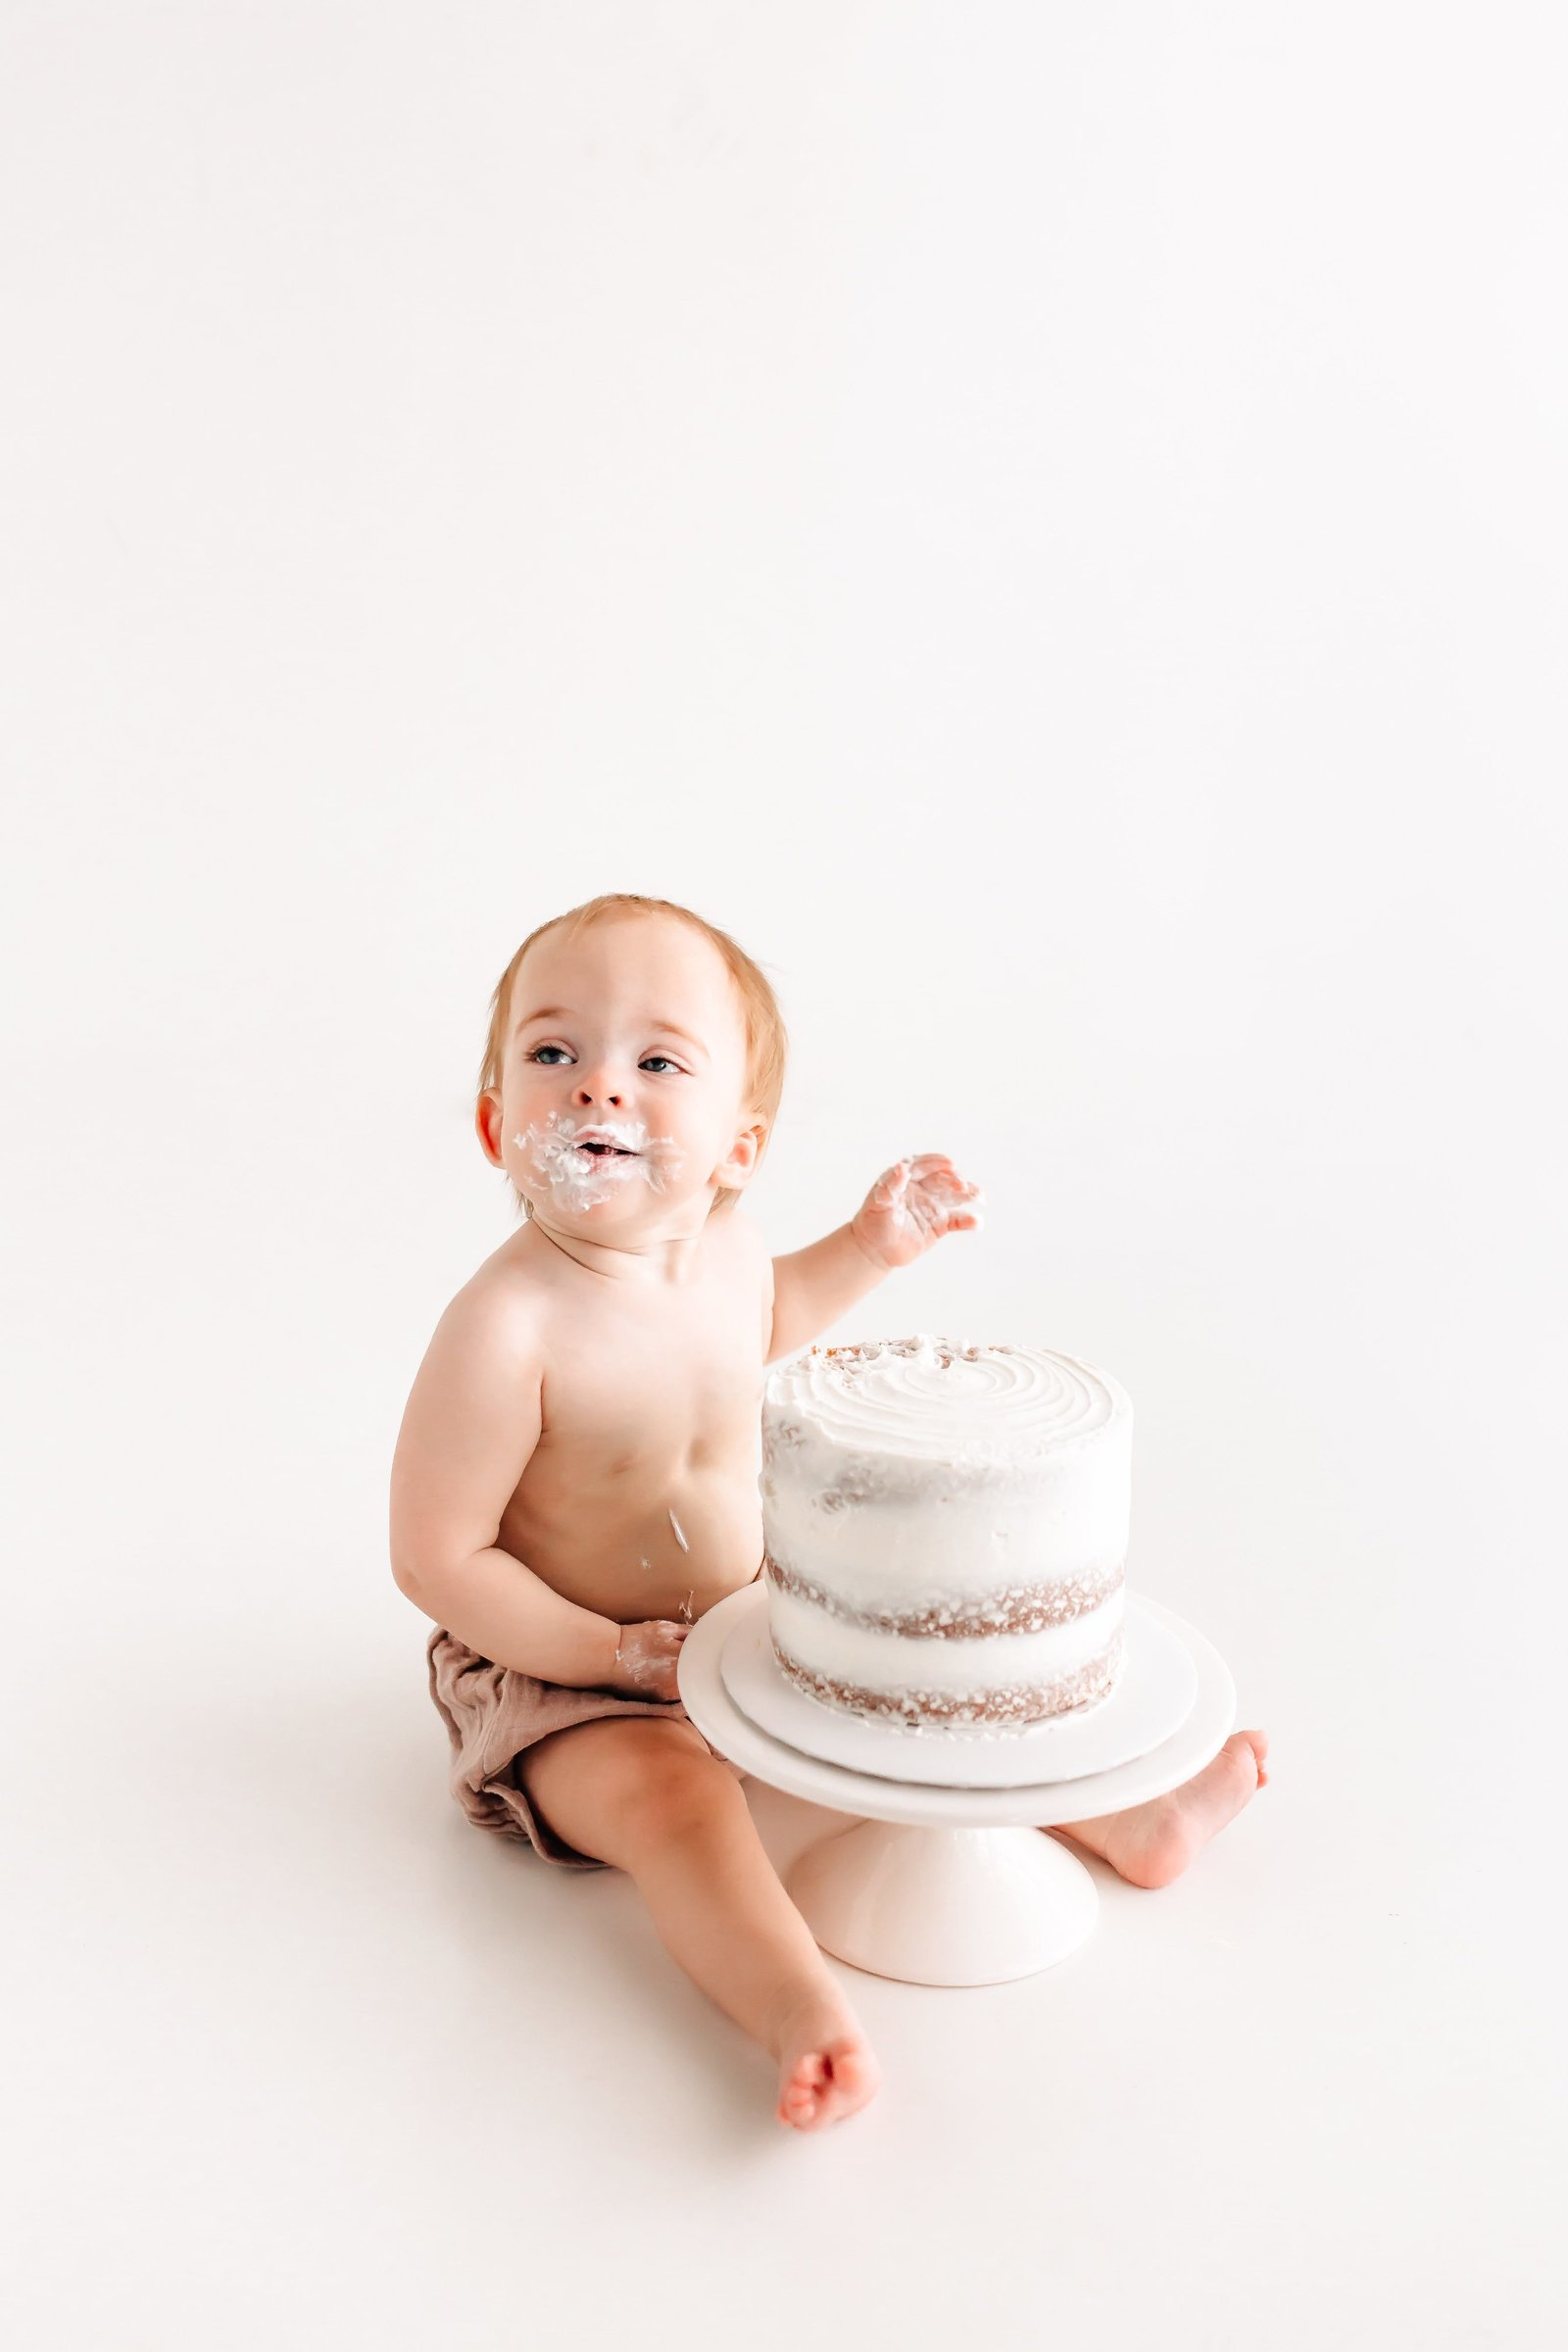 St_Louis_Baby_Photographer_Kelly_Laramore_Photography_94